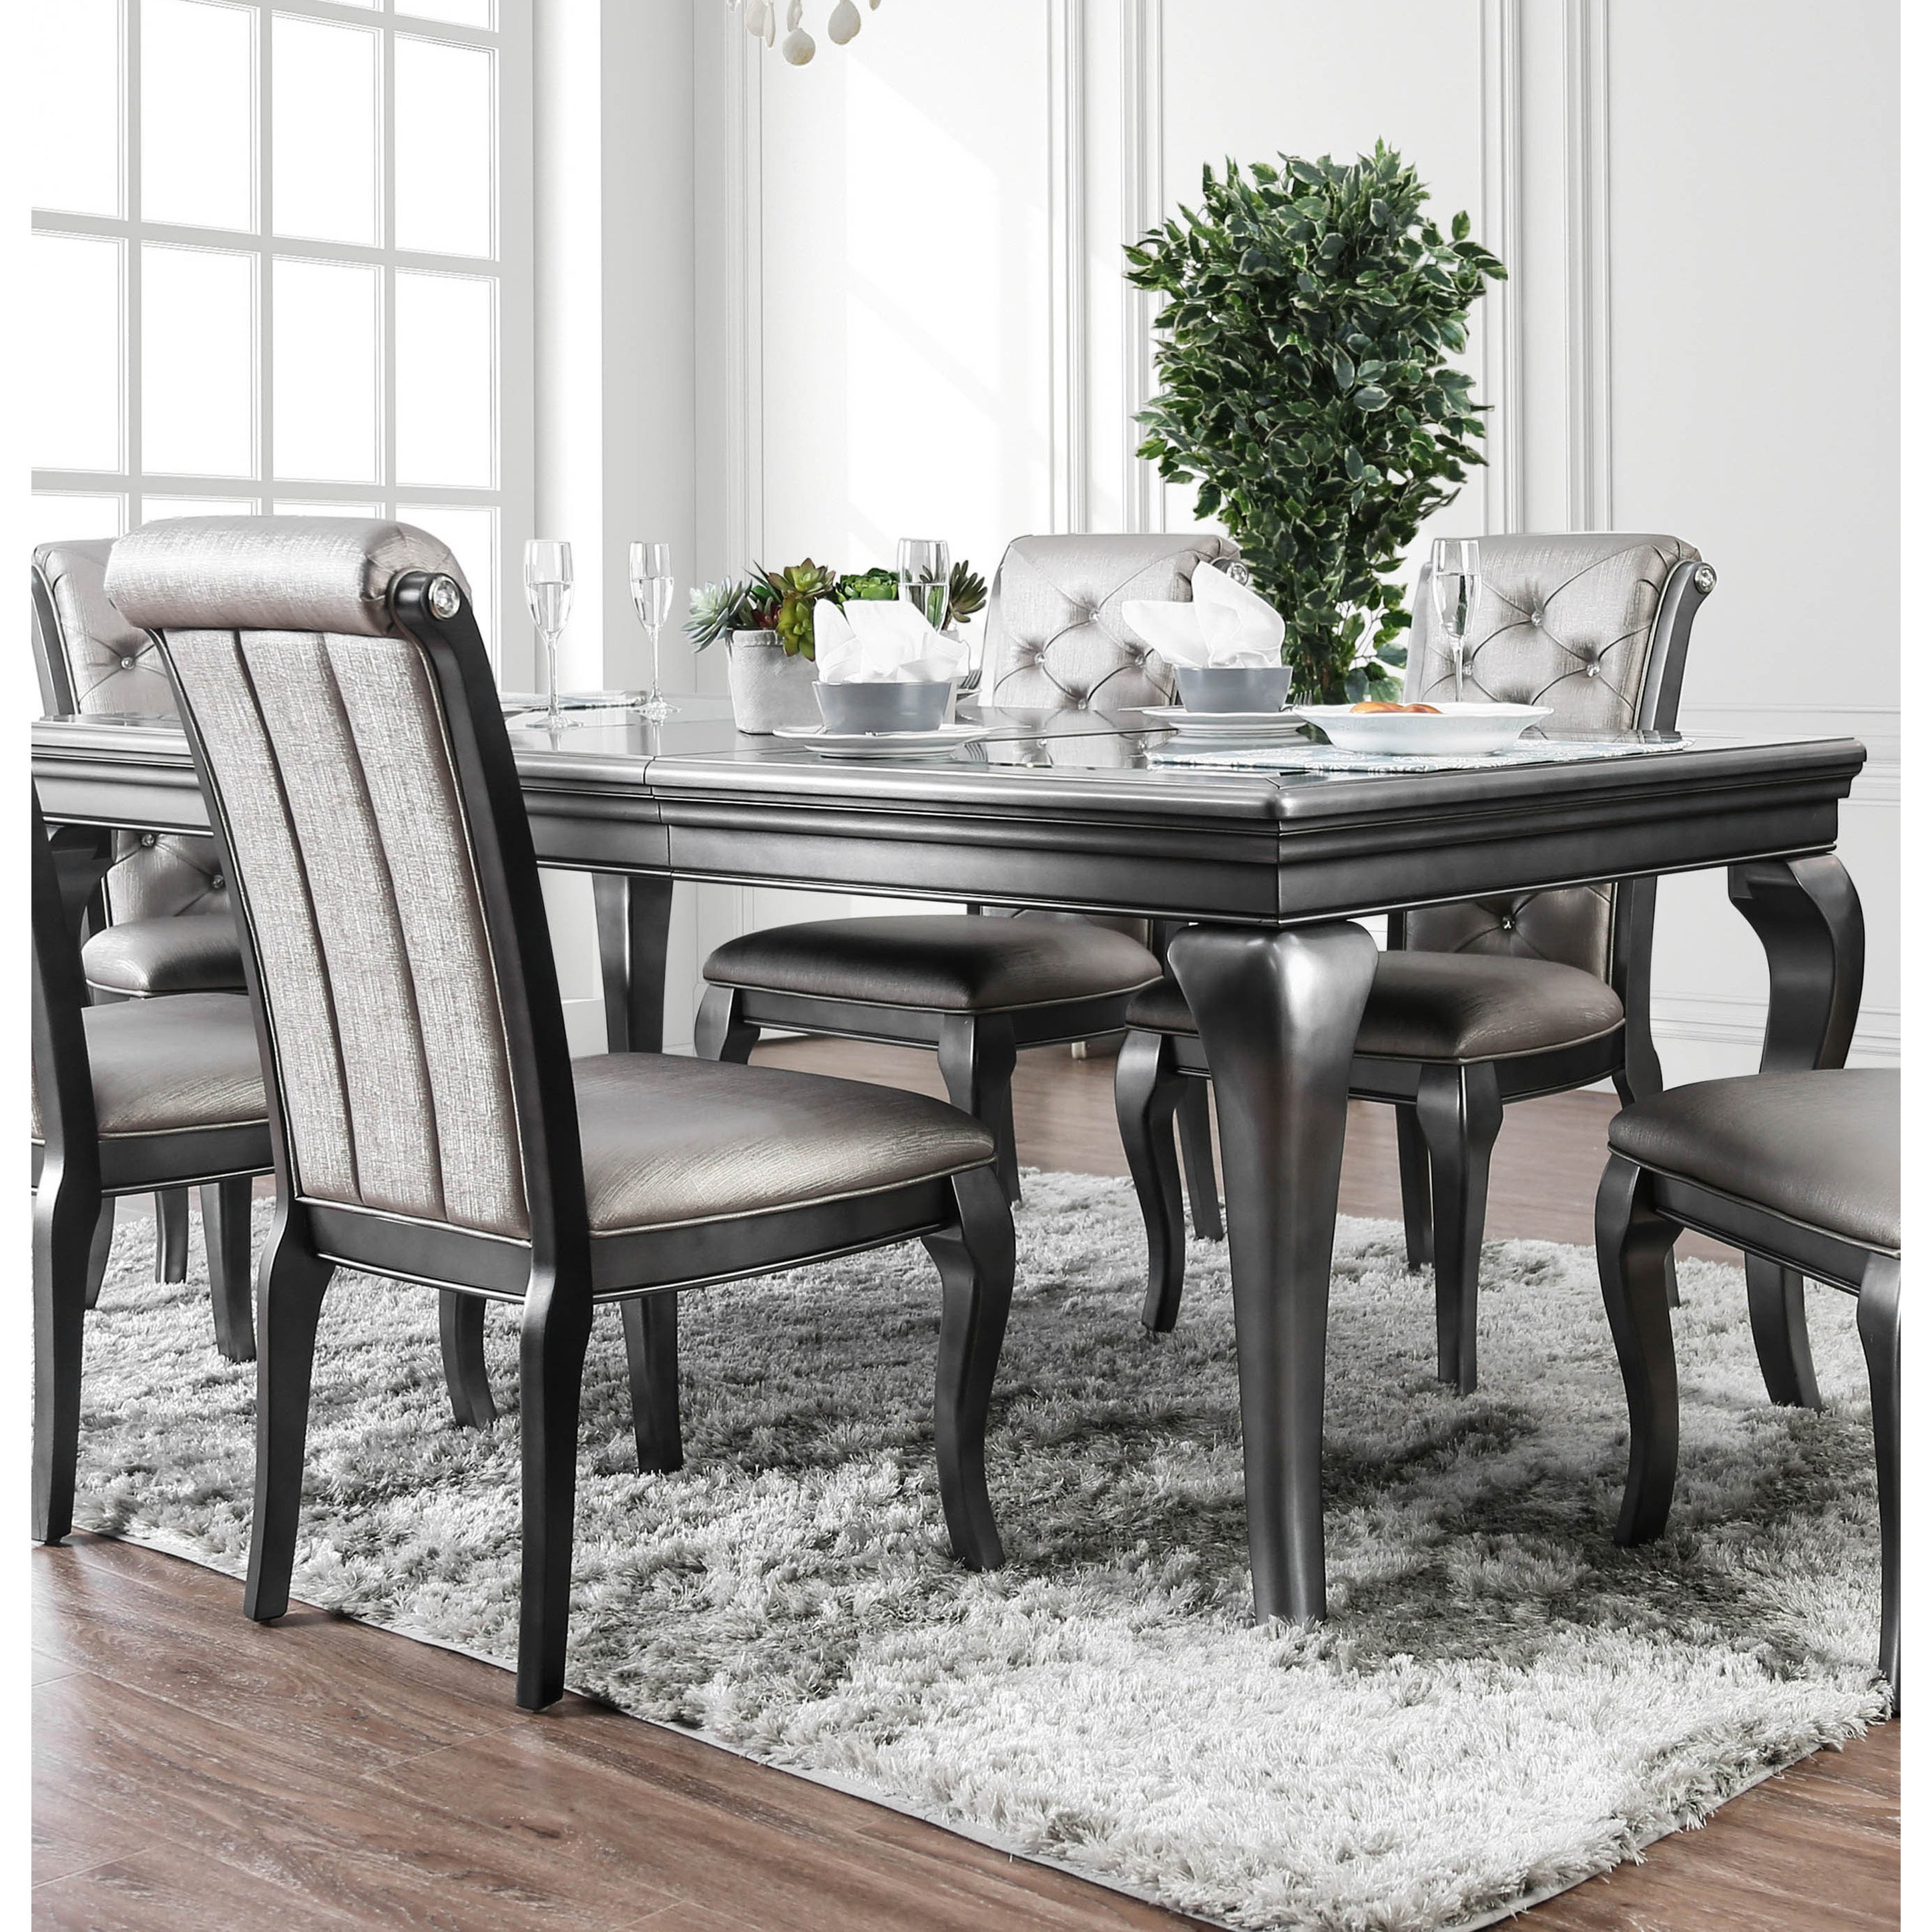 Grey Finish Glam Kitchen Dining Room Tables Online At